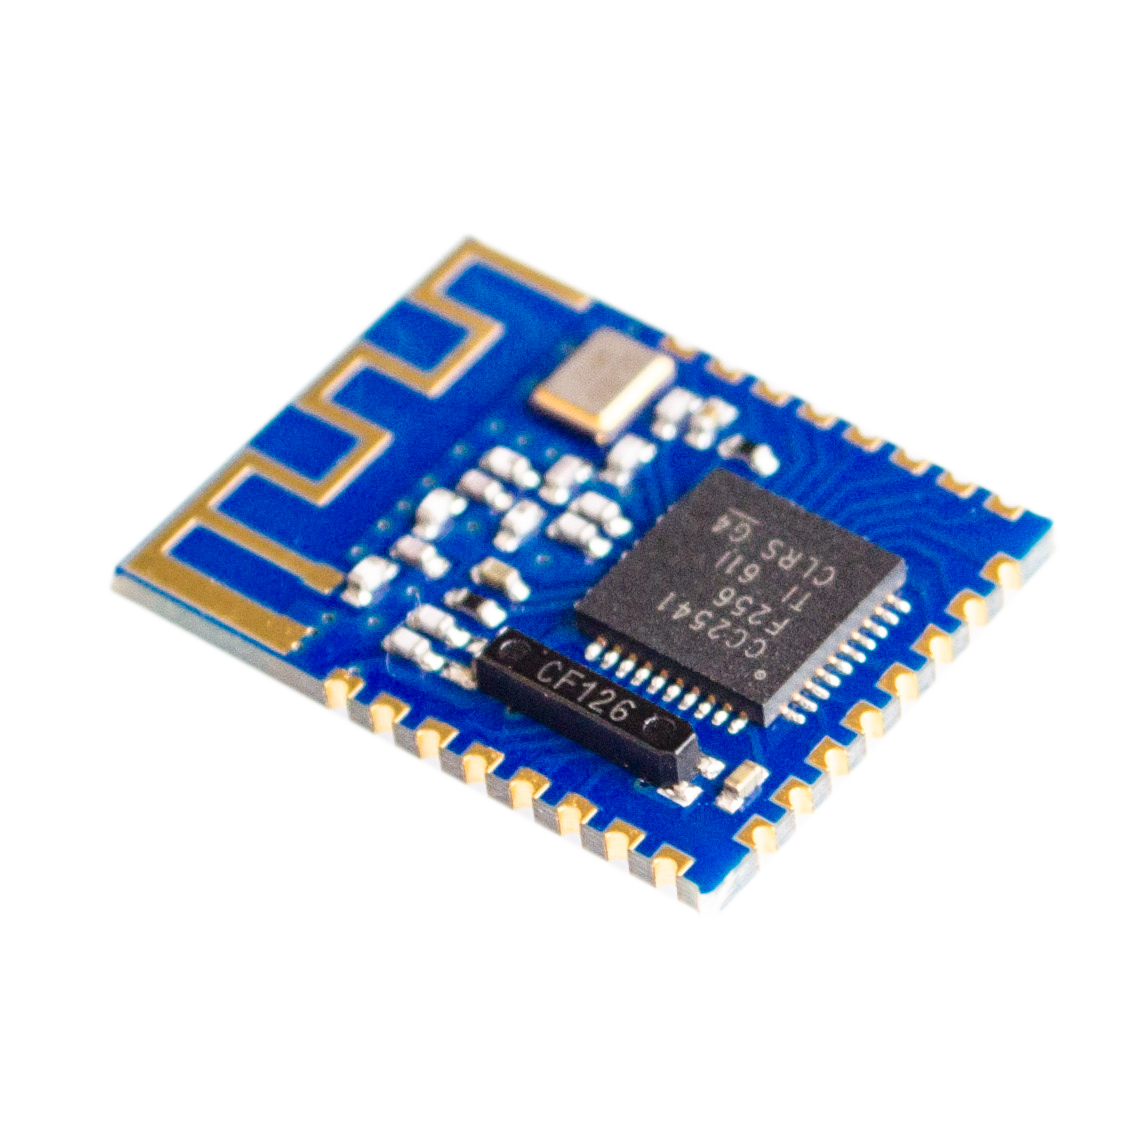 Ey 08 Ble Bluetooth 40 Uart Transceiver Module Jdy Cc2541 Relay Board For Arduino